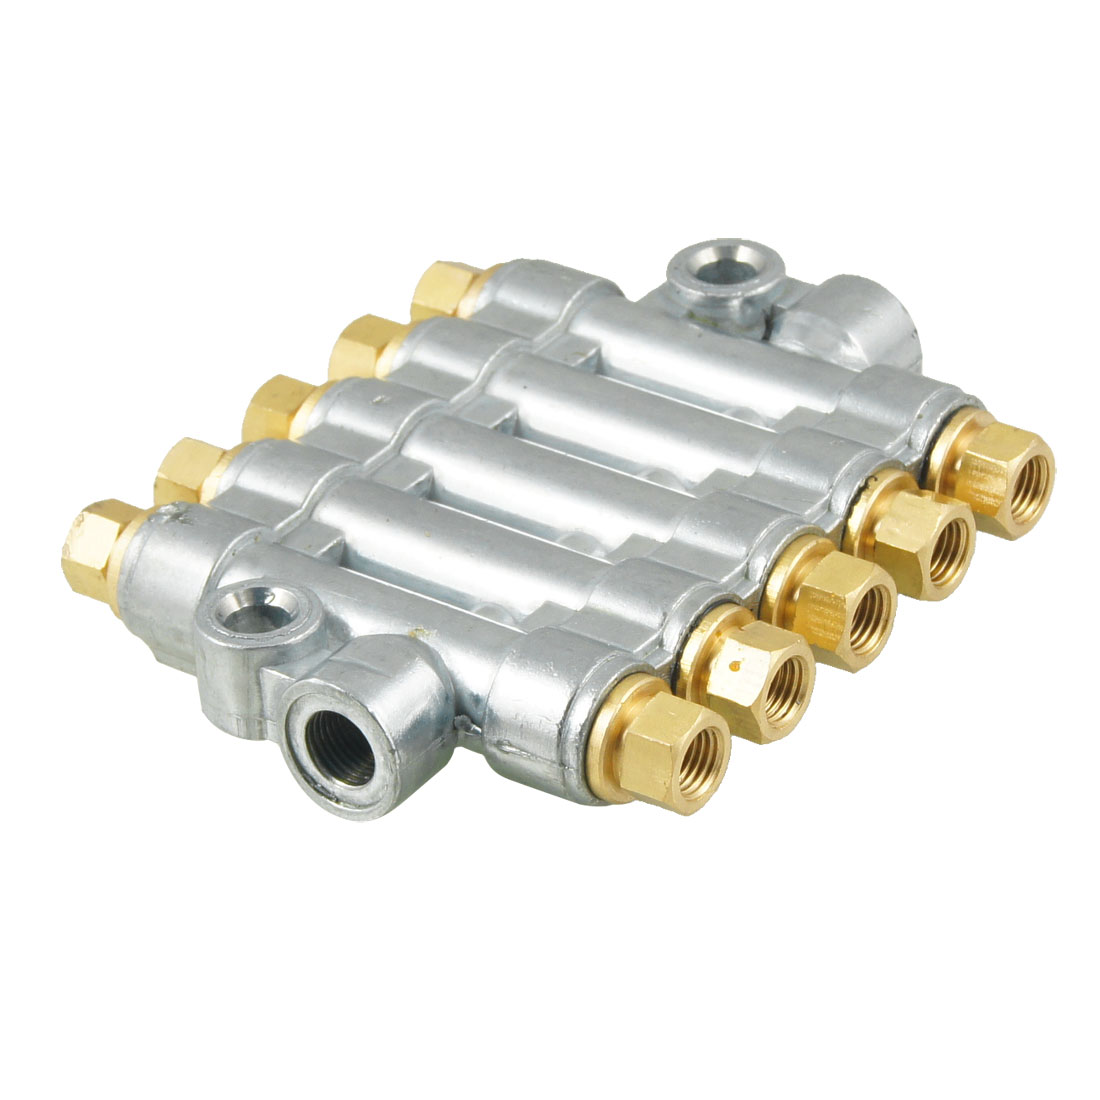 Air Pneumatic Aluminium Adjustable 5 Ways Distributor Block Manifold